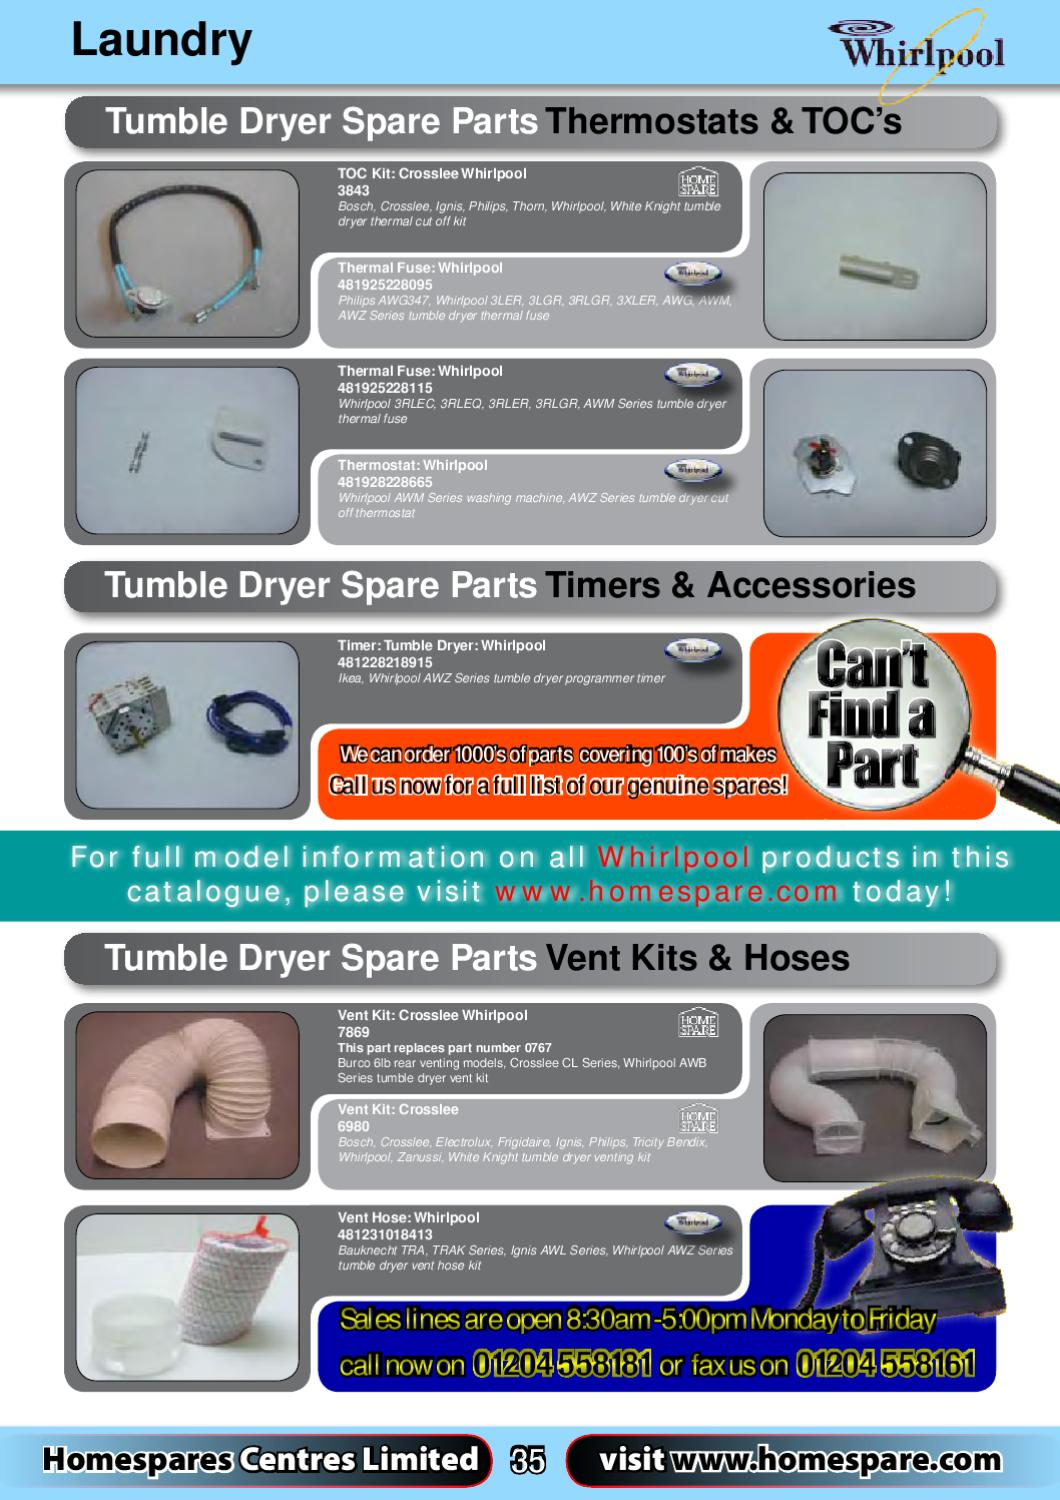 White Knight Tumble Dryer Spare Parts Manual